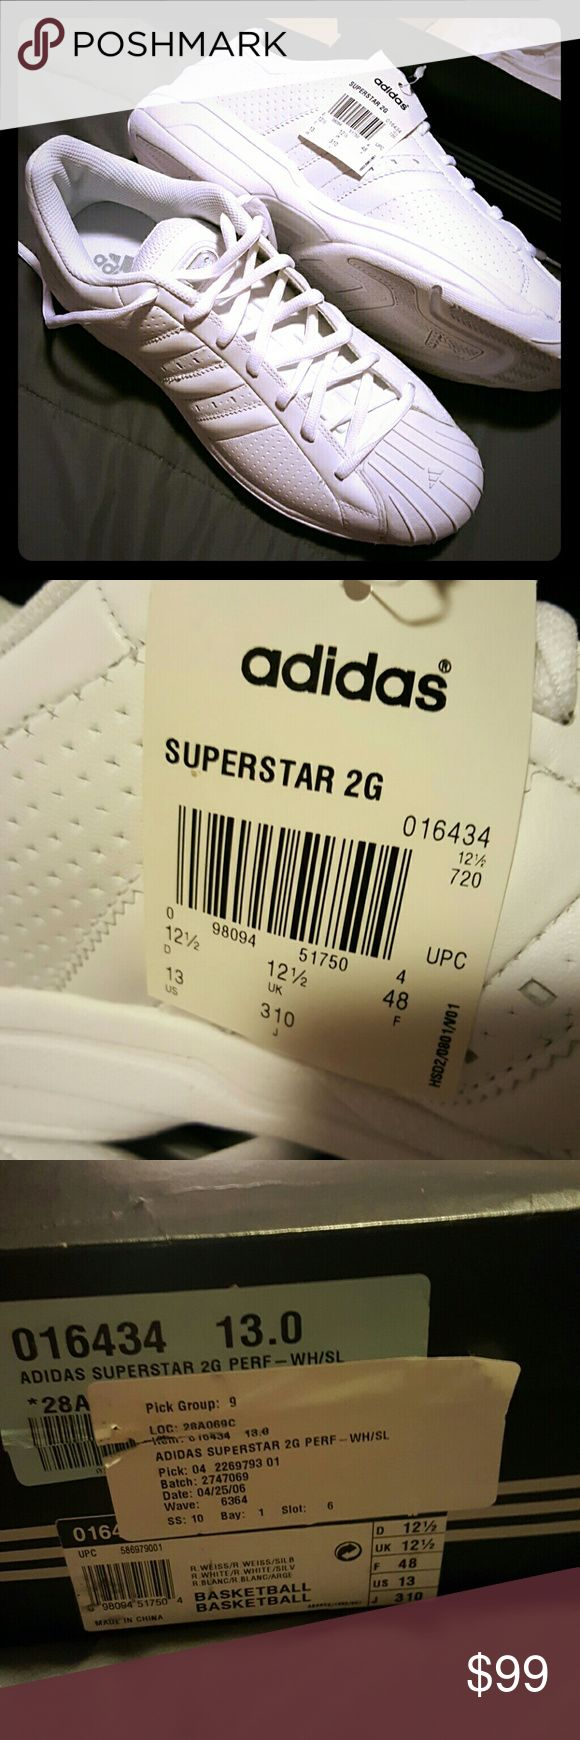 Mens adidas superstar sneakers adidas superstar 2g perf - new in box never worn Adidas Shoes Sneakers